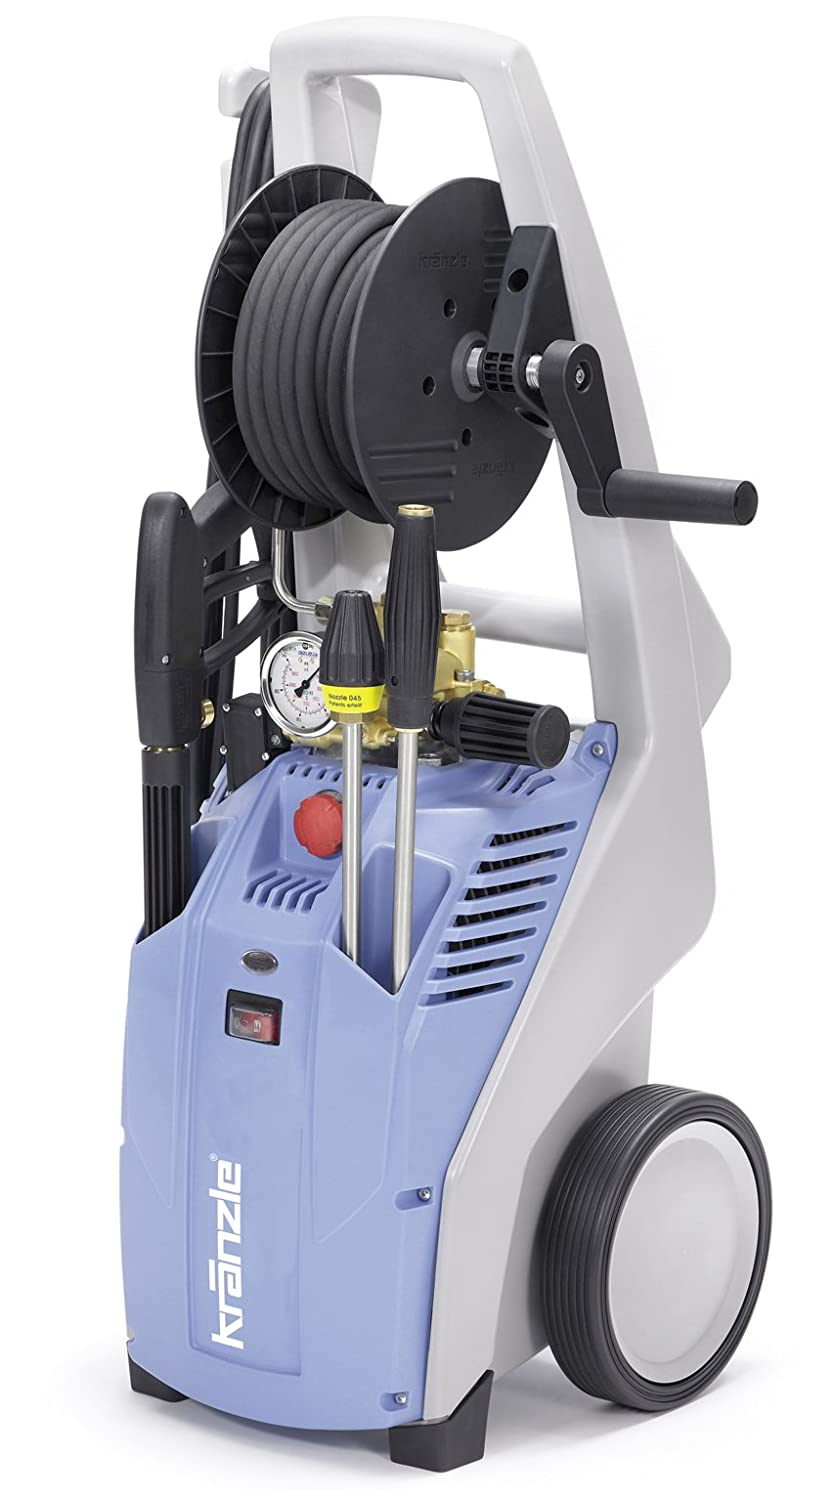 NaceCare K-1122 TST Pressure Washer with Total Stop, 2.1 GPM Pump Flow, 1400 PSI